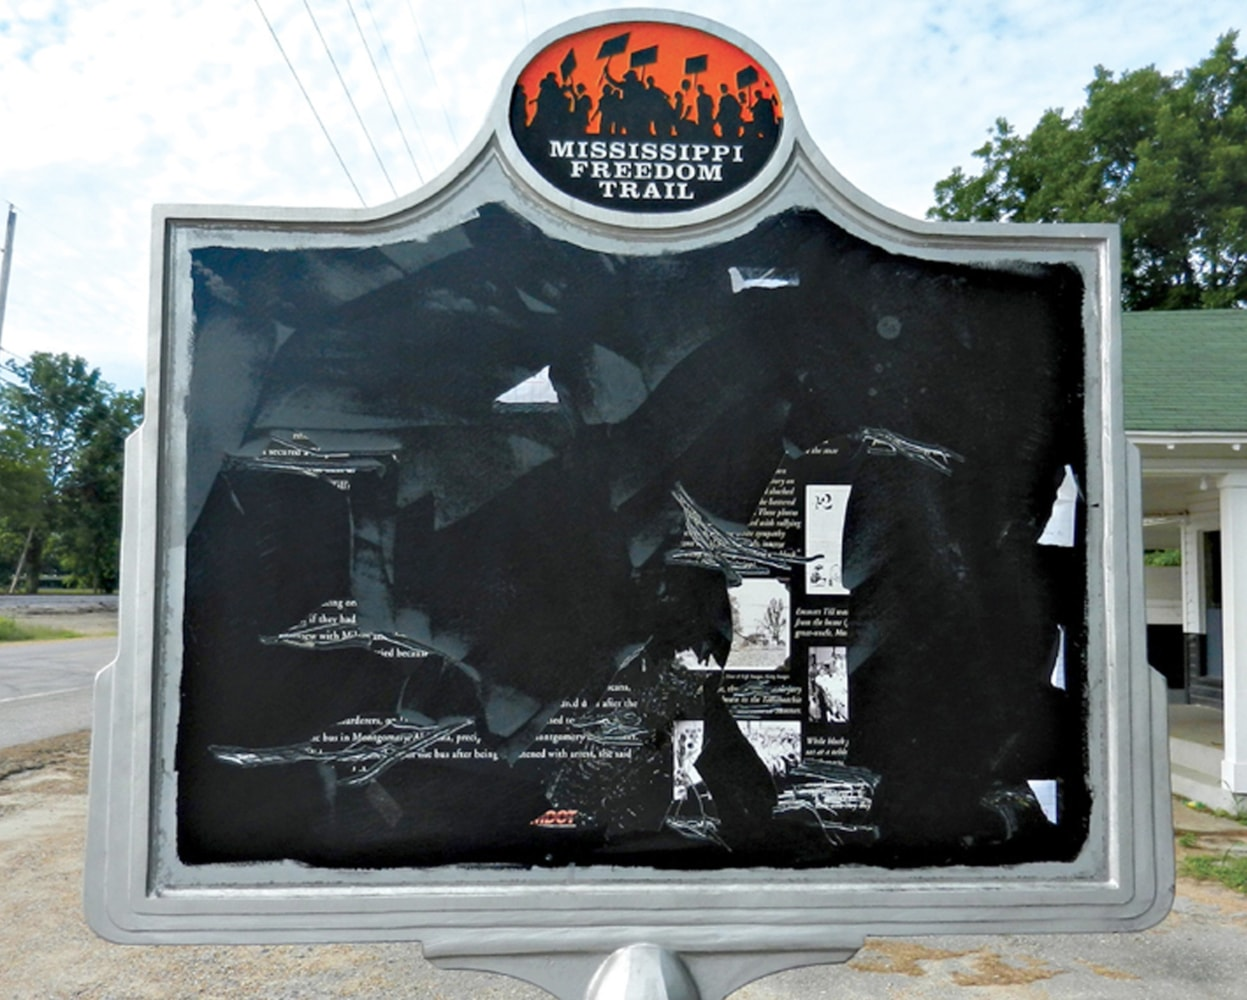 Someone Vandalized This Mississippi Emmett Till Marker, But Why?